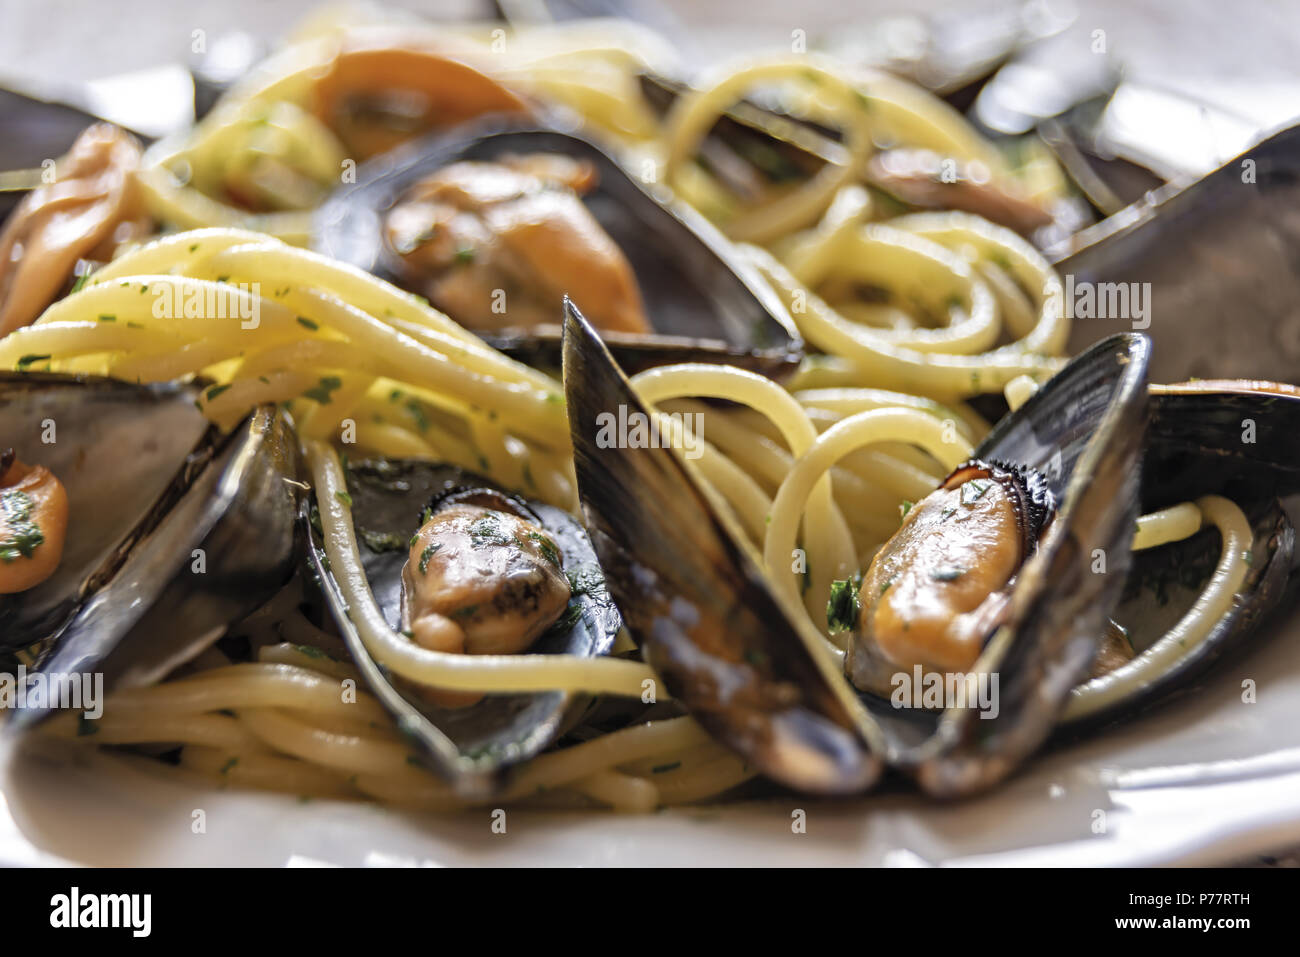 spaghetti pasta with mussels garlic and parsley 2 Stock Photo